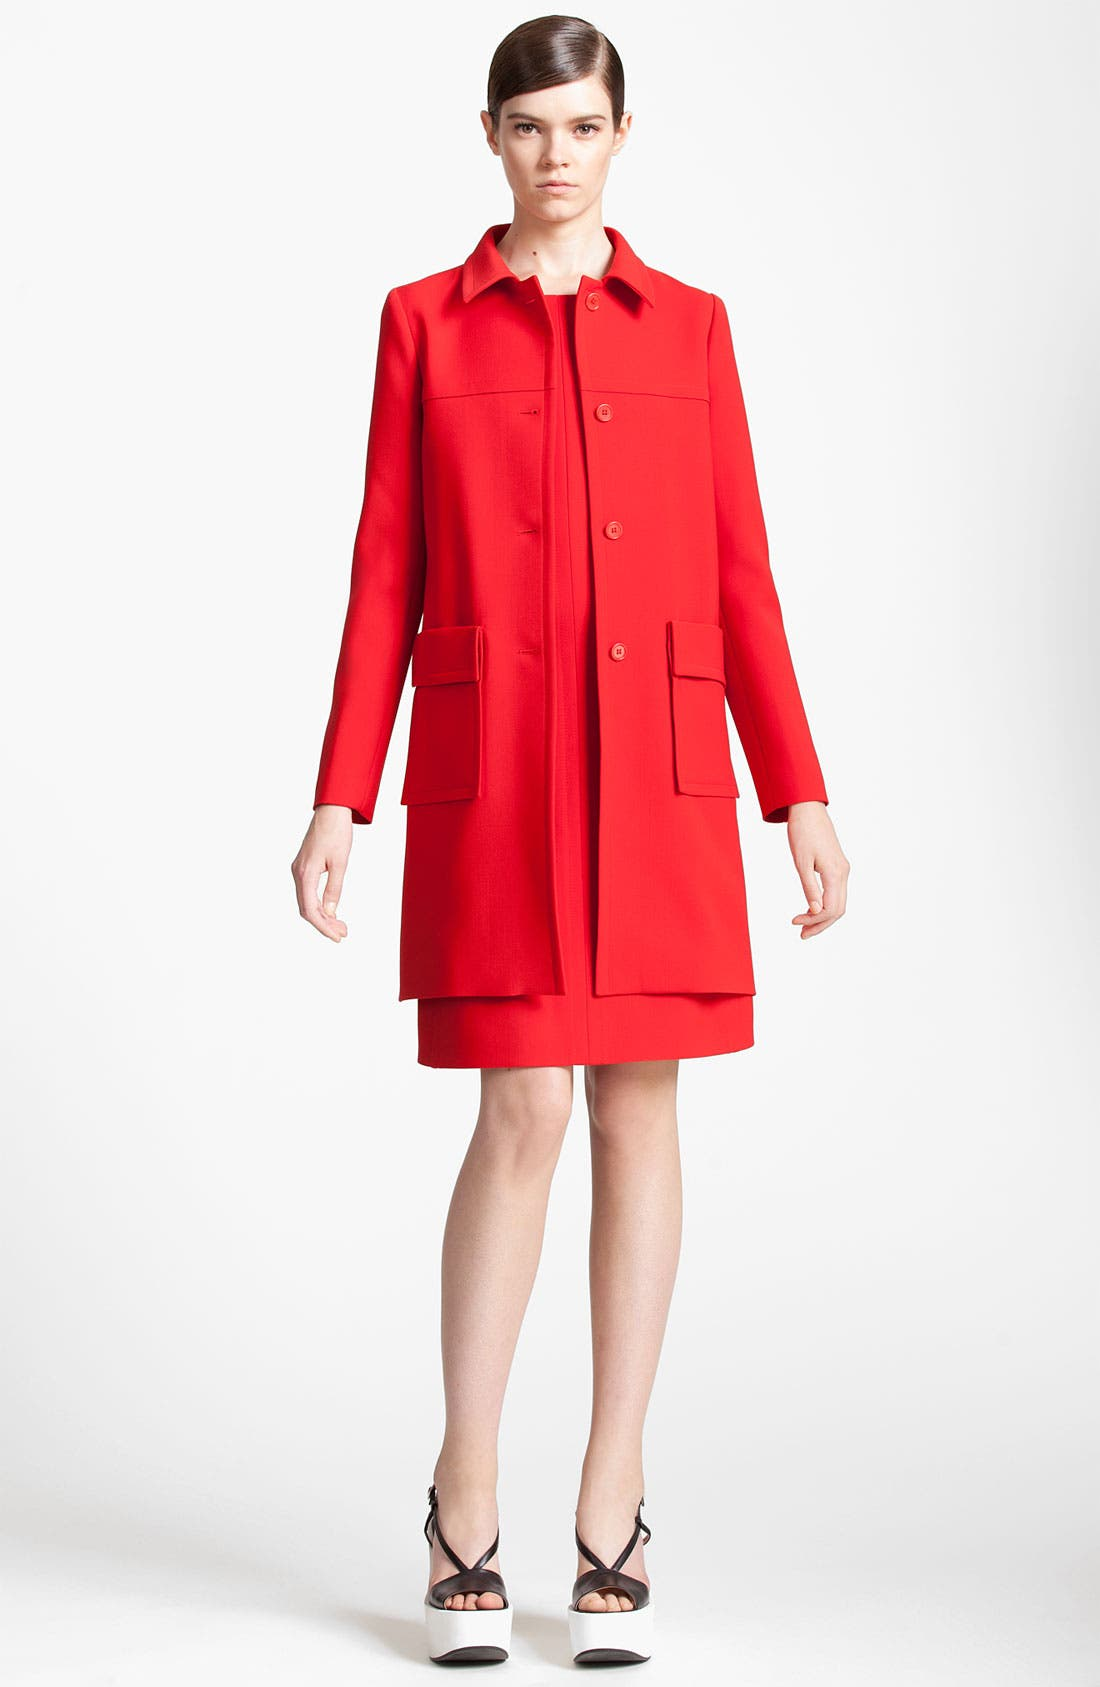 Alternate Image 1 Selected - Jil Sander Coat & Dress